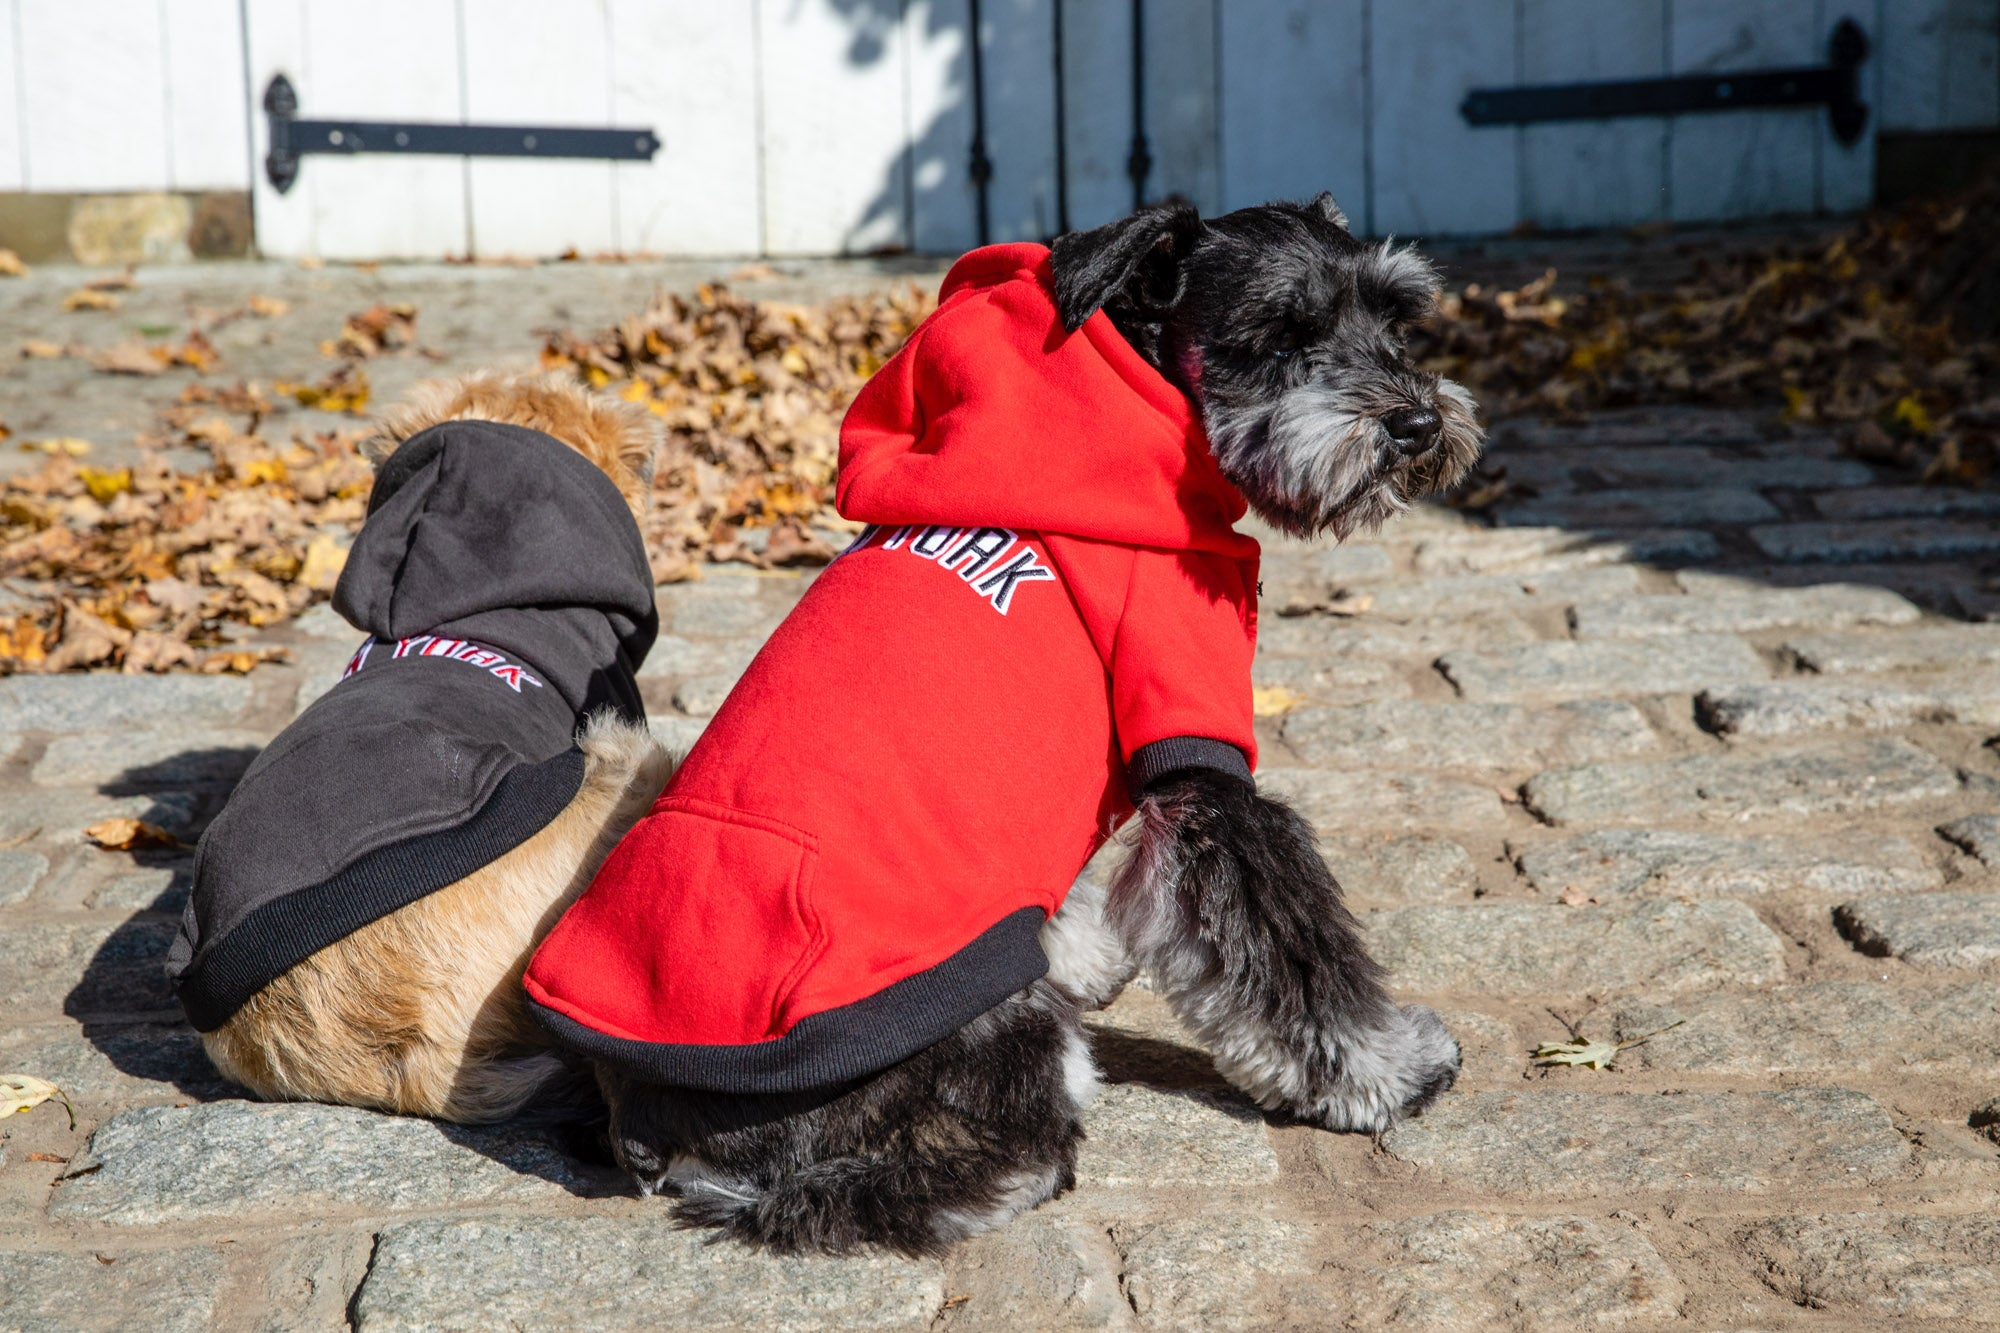 Sweatshirt Hoodie - NYC Dog Hoodie - Dog Sweatshirt - 4 Color Options